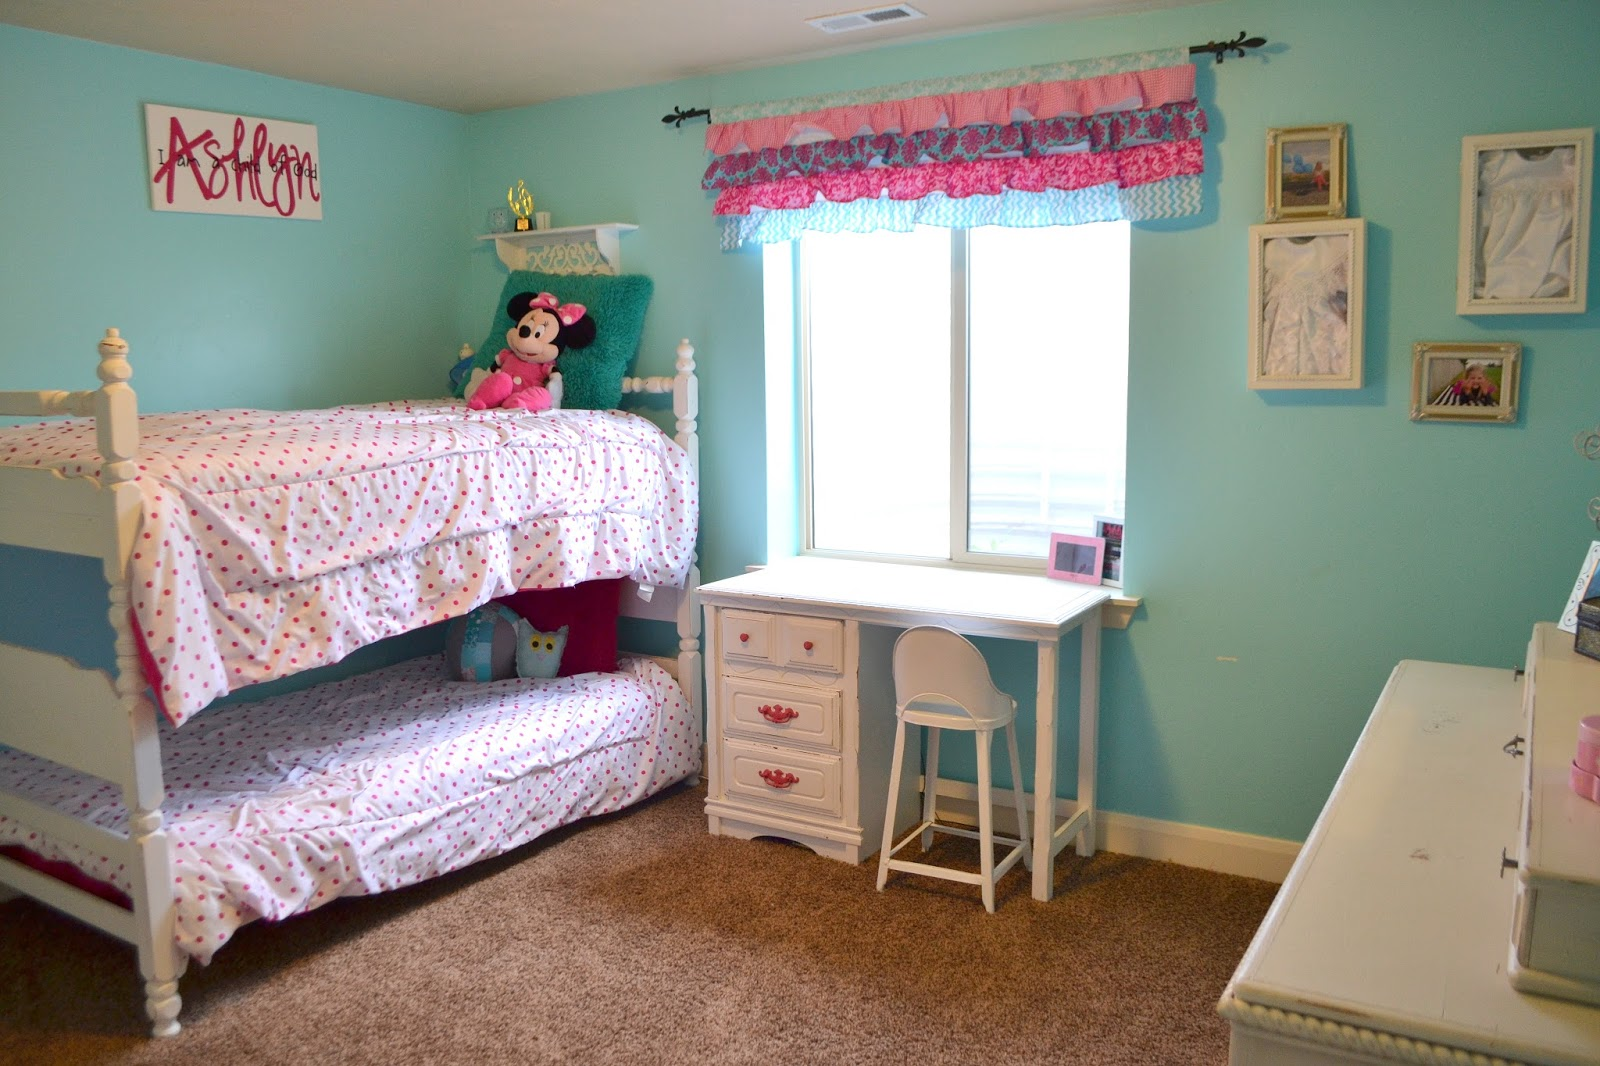 Hot pink and turquoise girls bedroom a vision to remember all things handmade blog hot pink - Images of girls bedroom ...